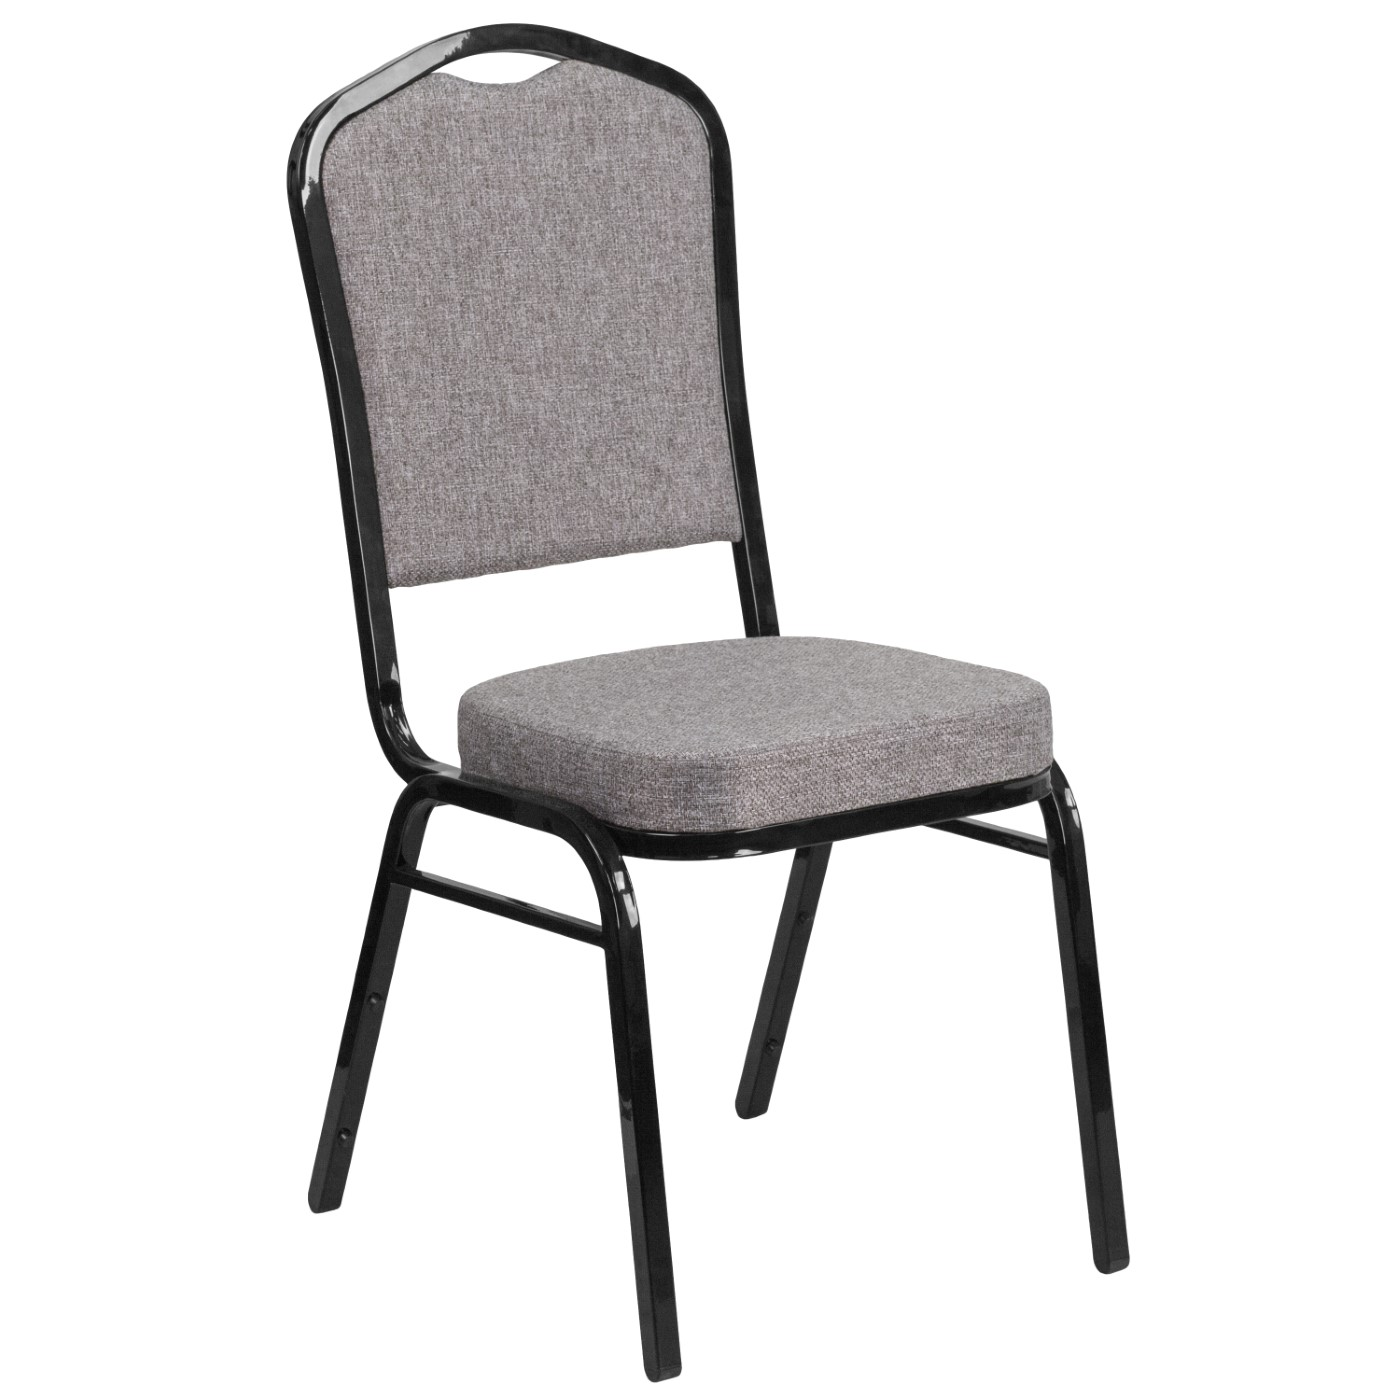 TOUGH ENOUGH Series Crown Back Stacking Banquet Chair in Gray Fabric - Black Frame